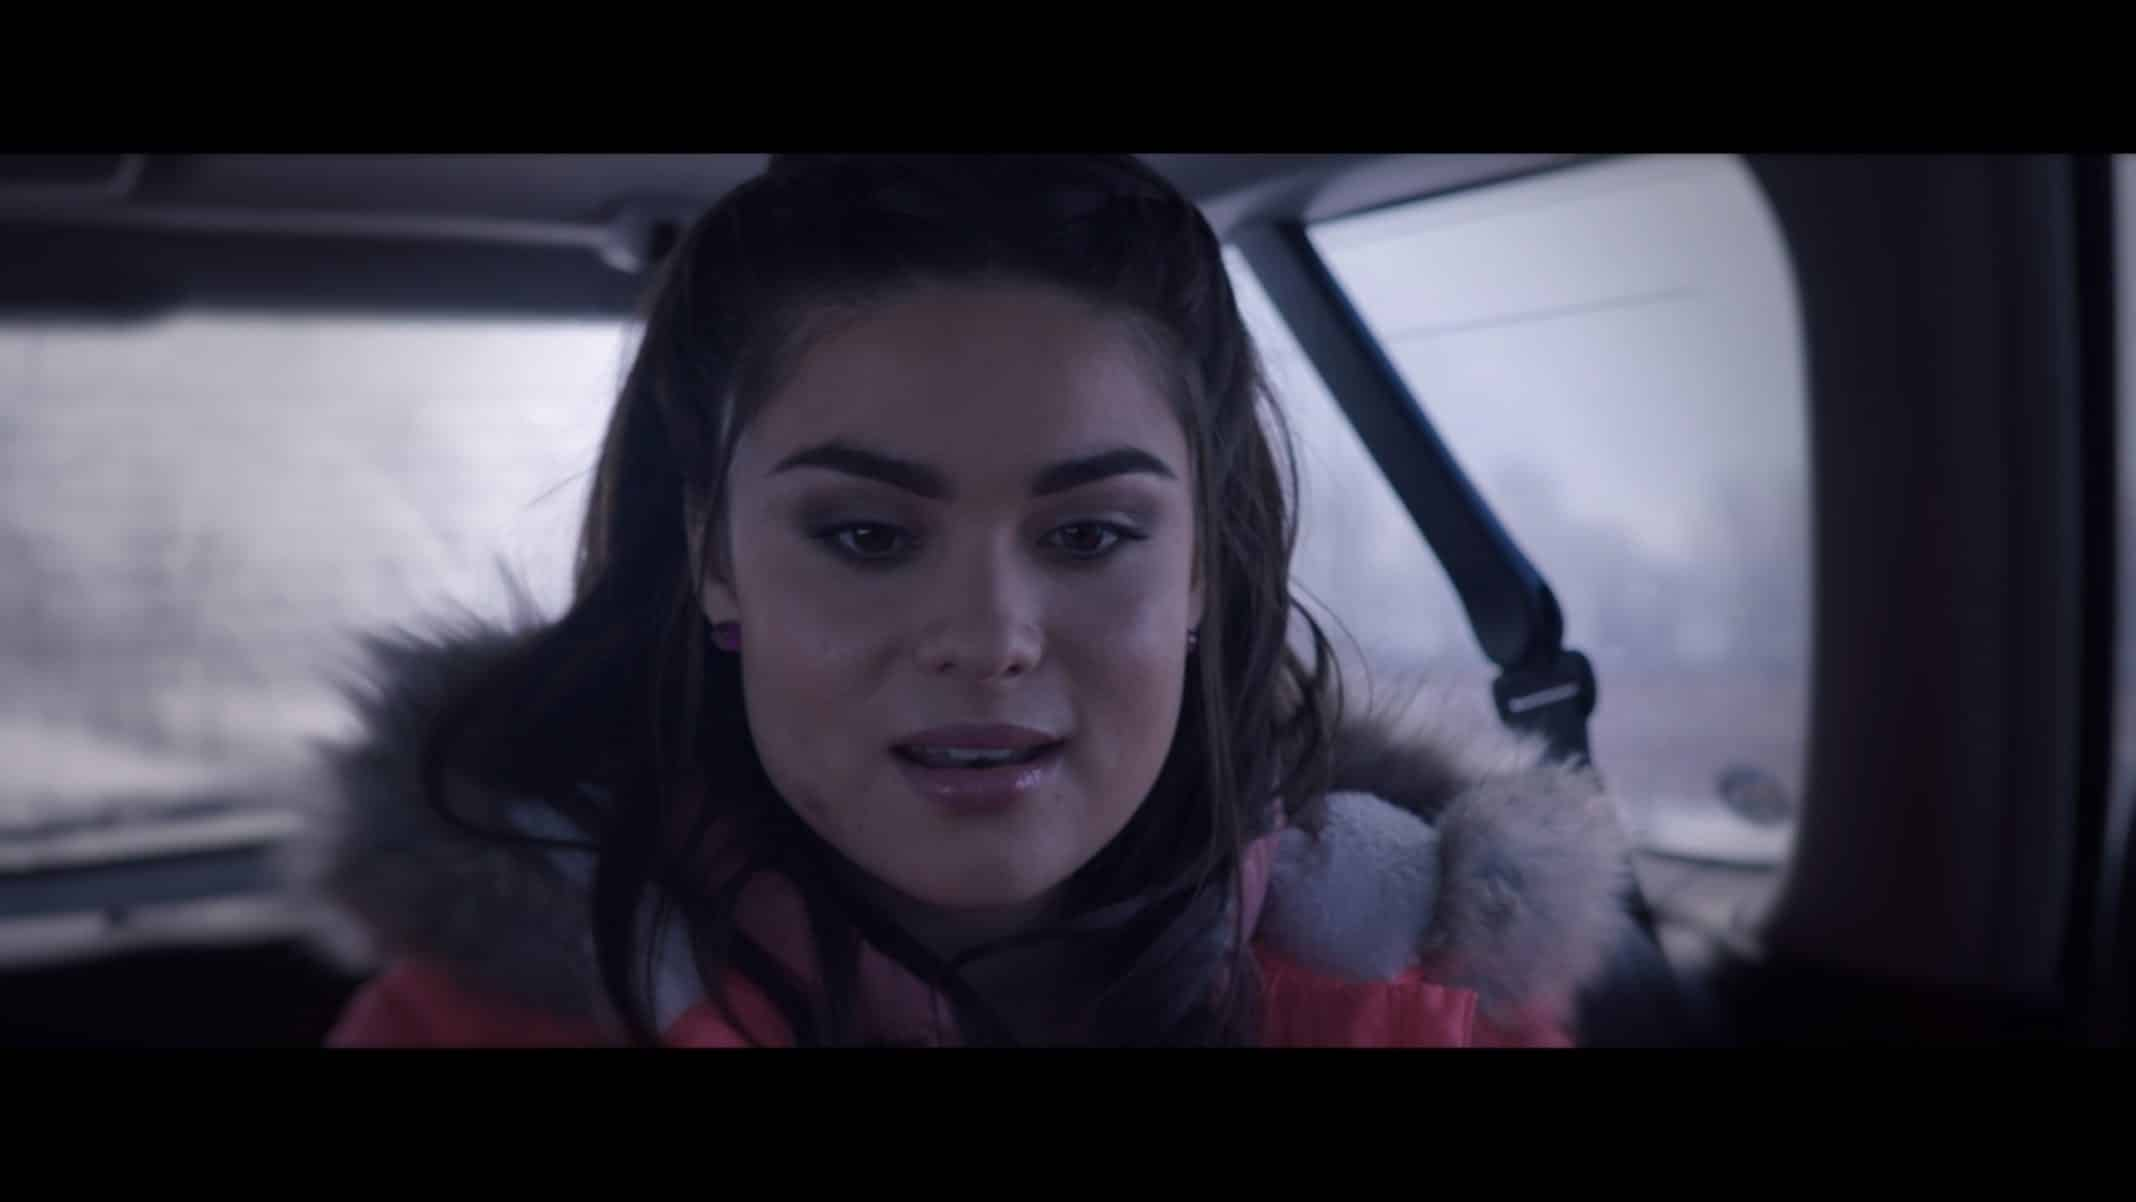 Brittany (Devery Jacobs) in the car with Kayla and Kayla's dad.